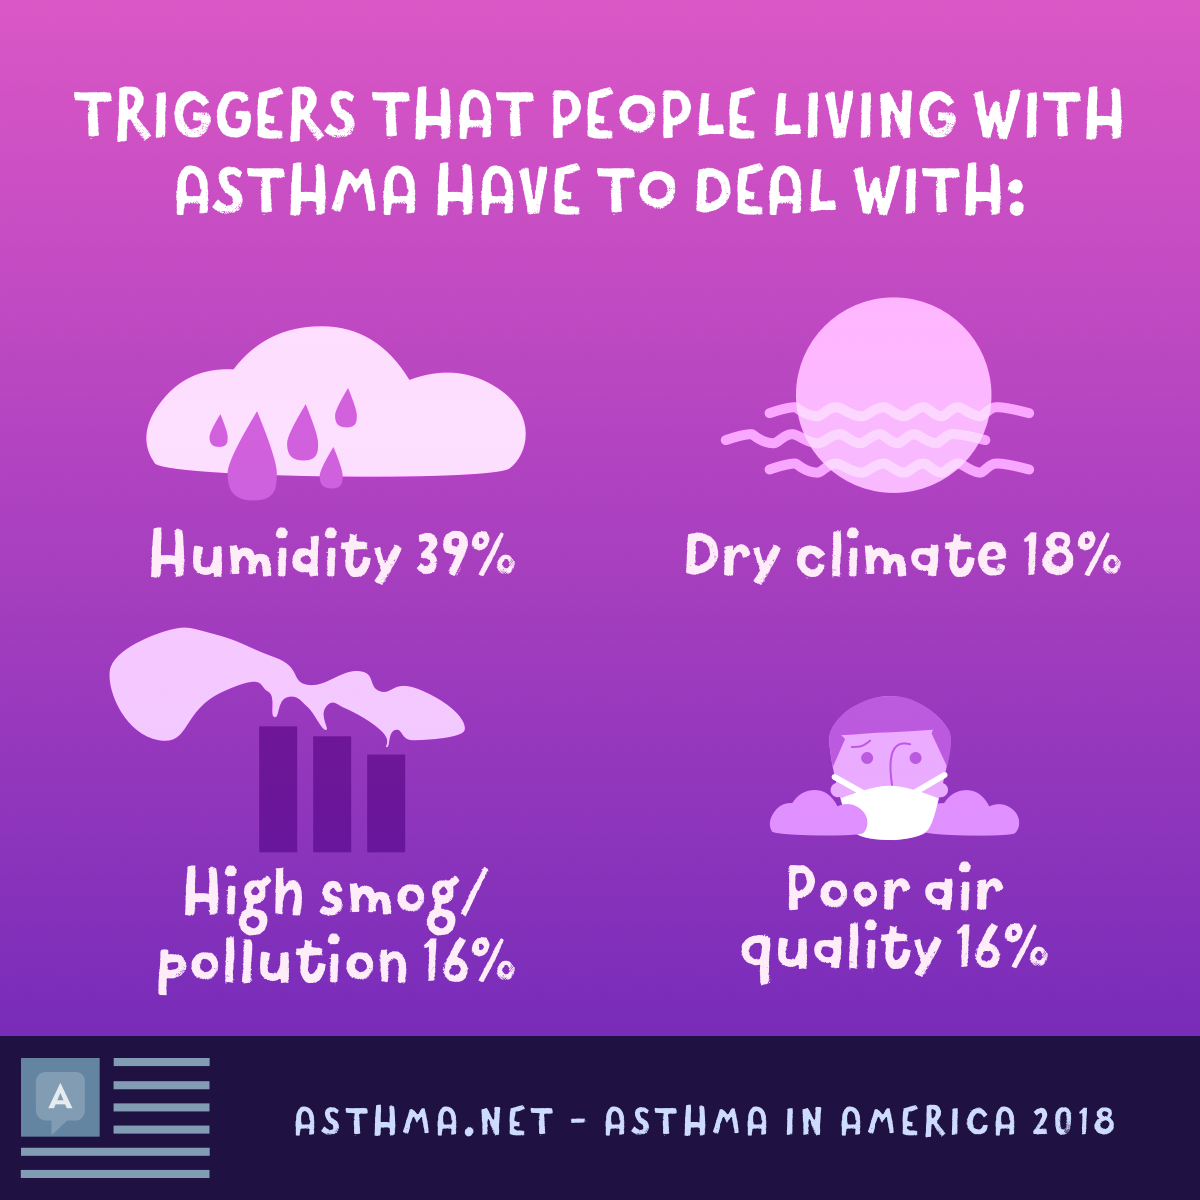 People with asthma have to deal with triggers like humidity, dry climate, pollution, and poor air quality